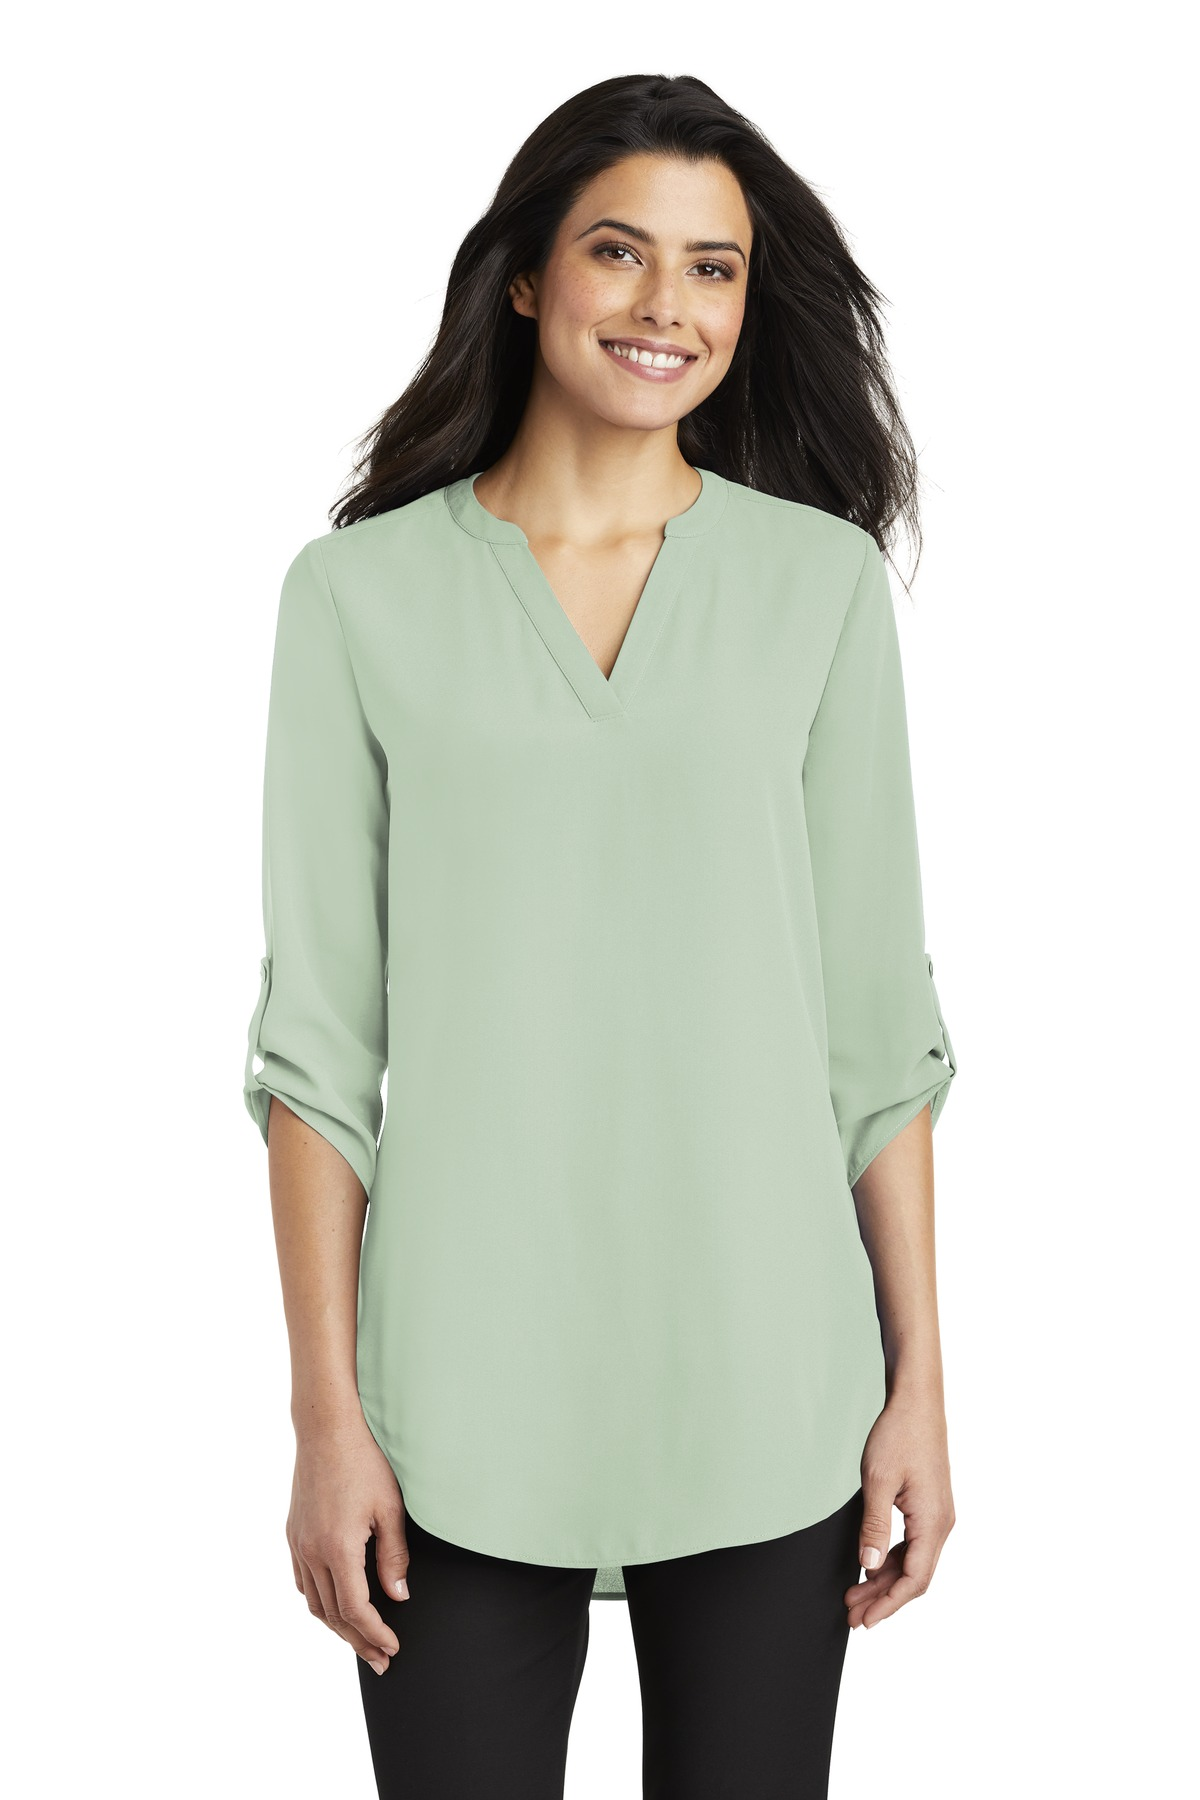 Port Authority ®  Ladies 3/4-Sleeve Tunic Blouse. LW701 - Misty Sage